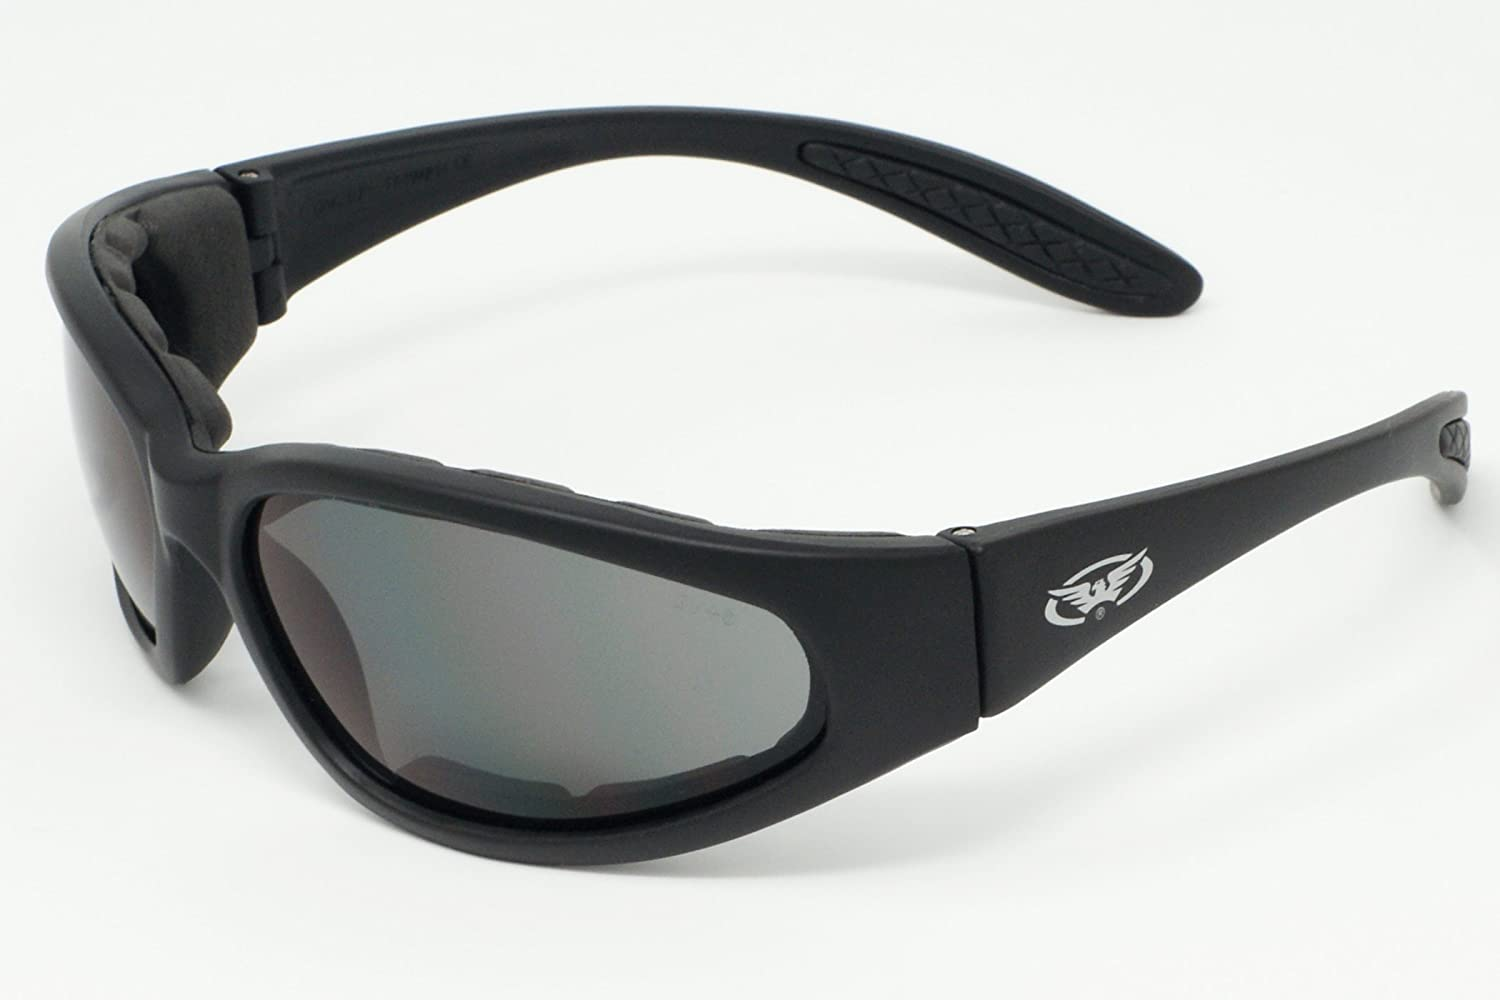 Motorcycle wraparound sunglasses with E.V.A foam lining and shatterproof anti fog lenses complete with free microfibre storage pouch. Global Vision